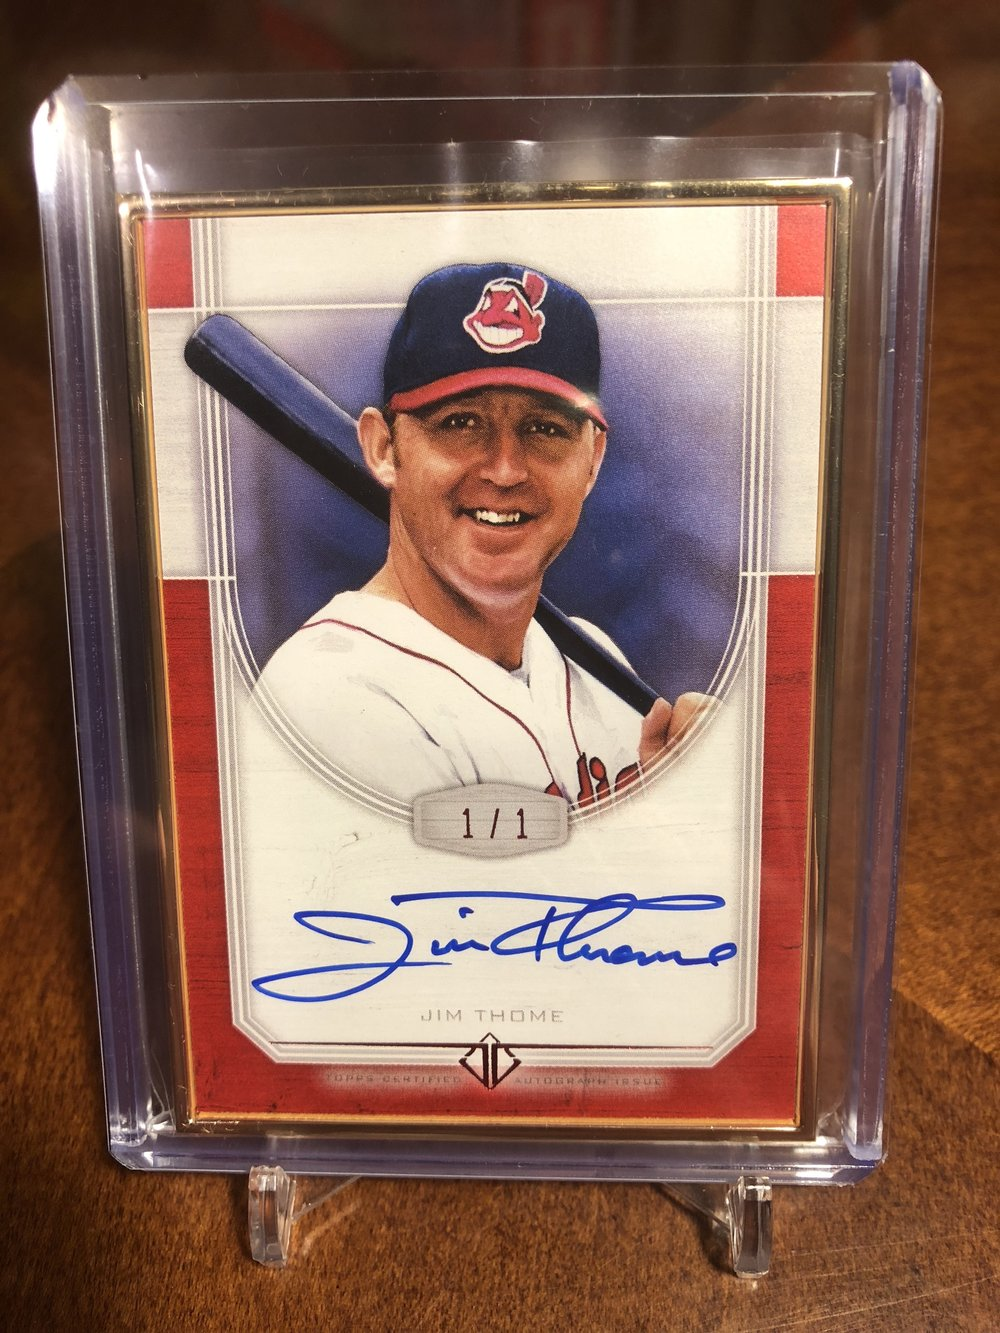 2017 Topps Transcendent Jim Thome Auto Red 1/1